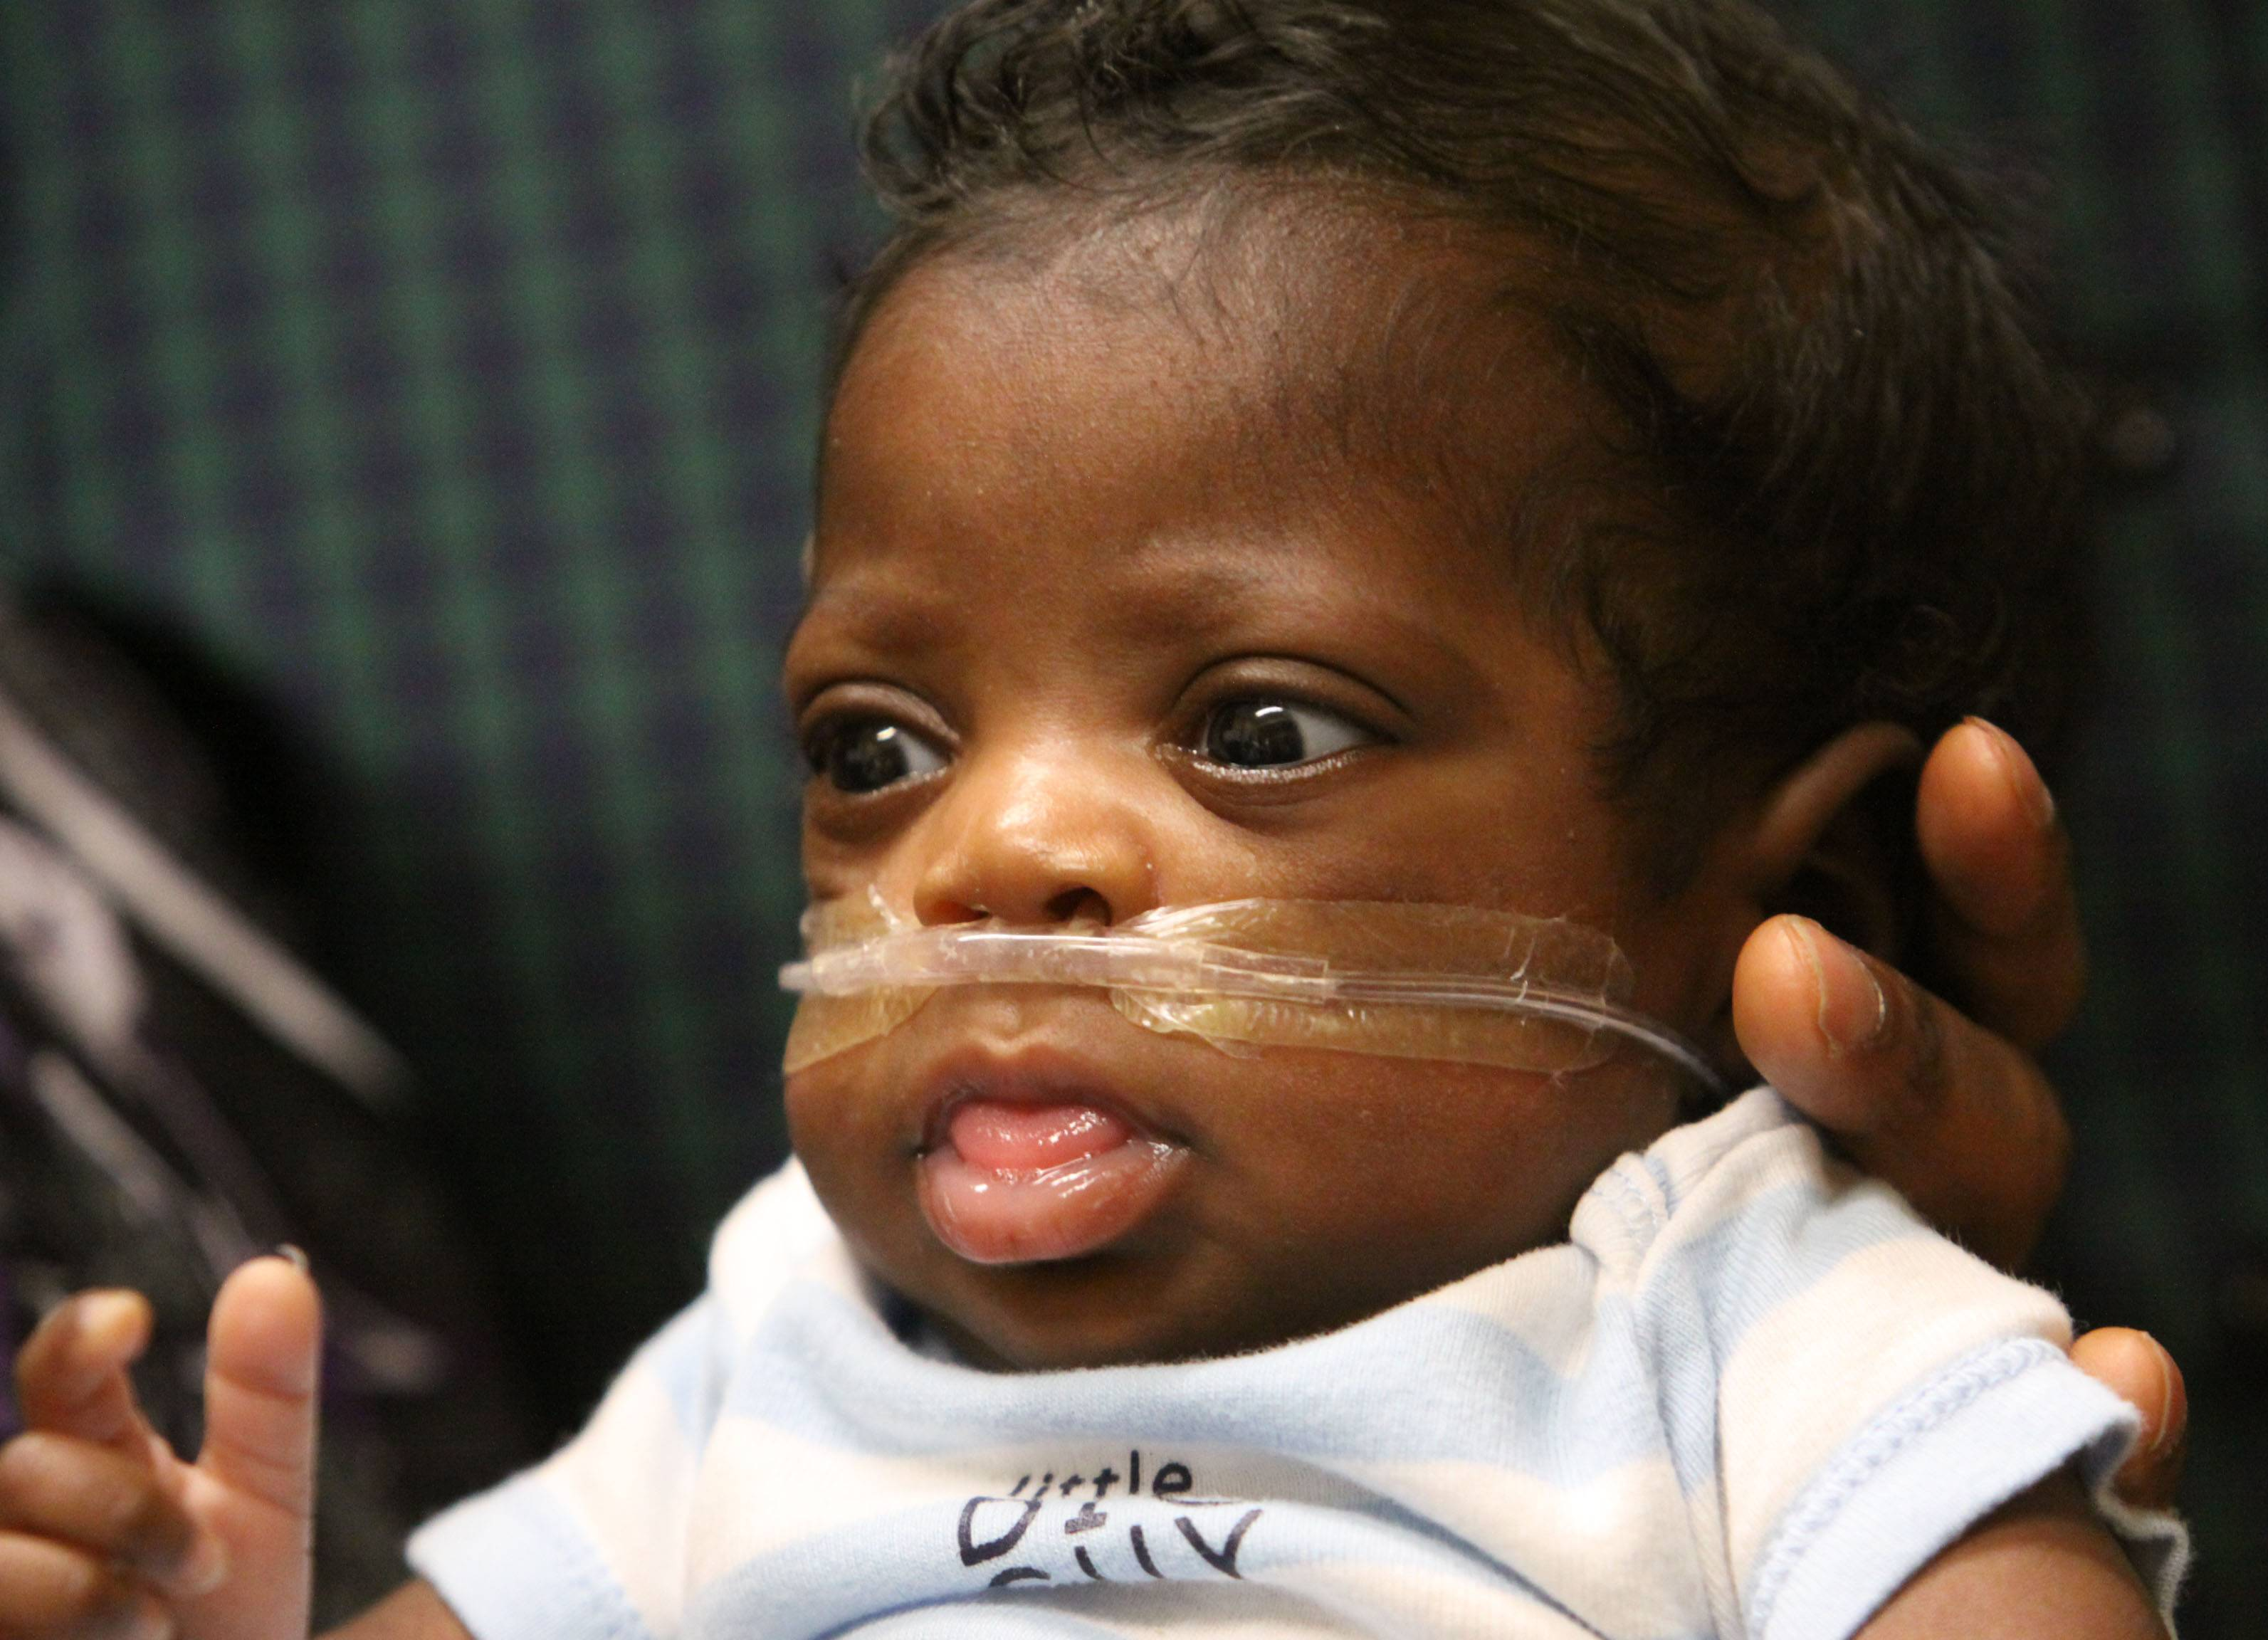 His parents say Michael Newson is doing well nearly four months after his premature birth.